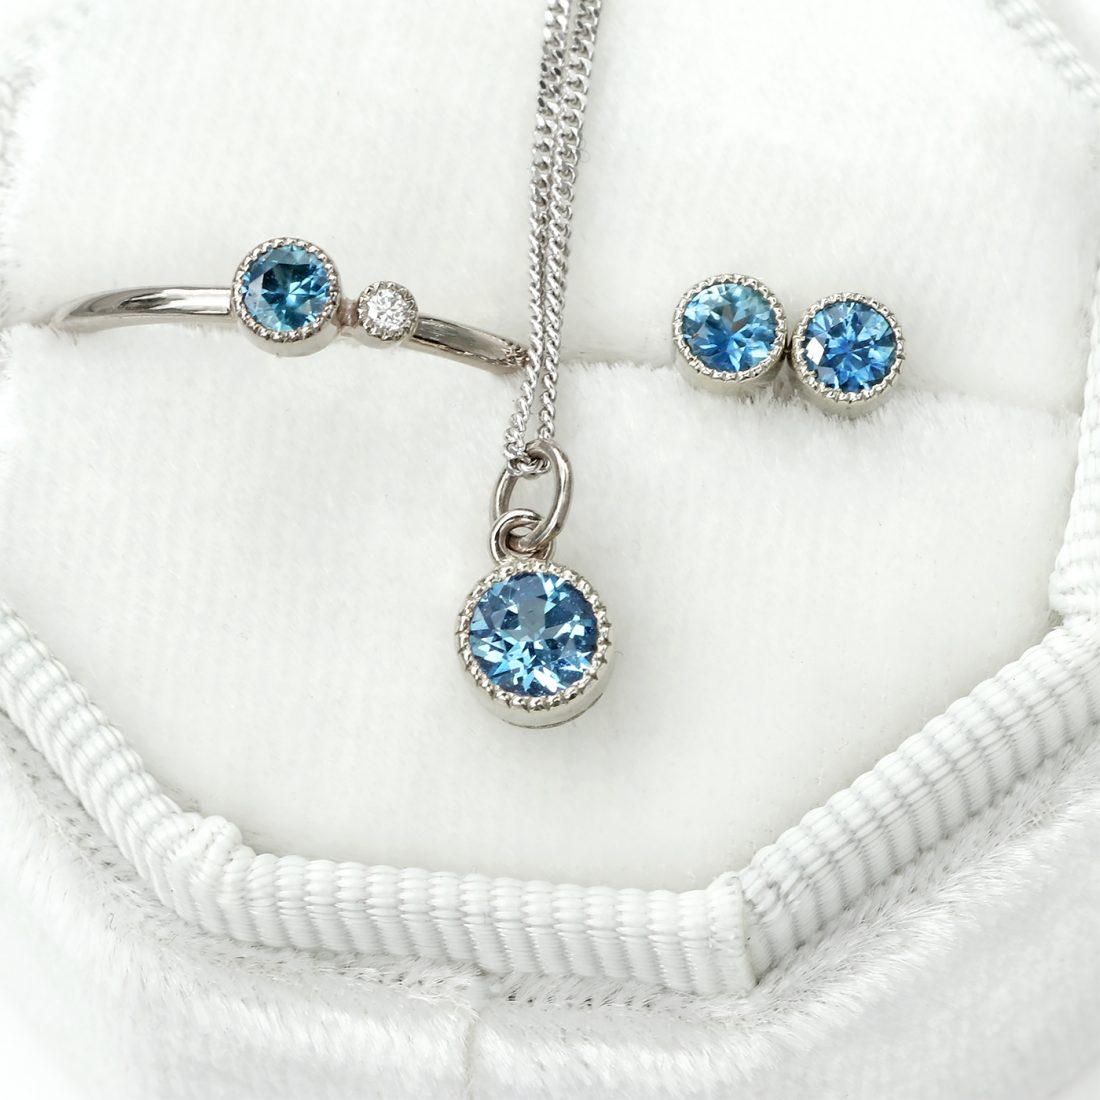 18ct White Gold Petite Milgrain Sapphire Birthstone Jewellery Set